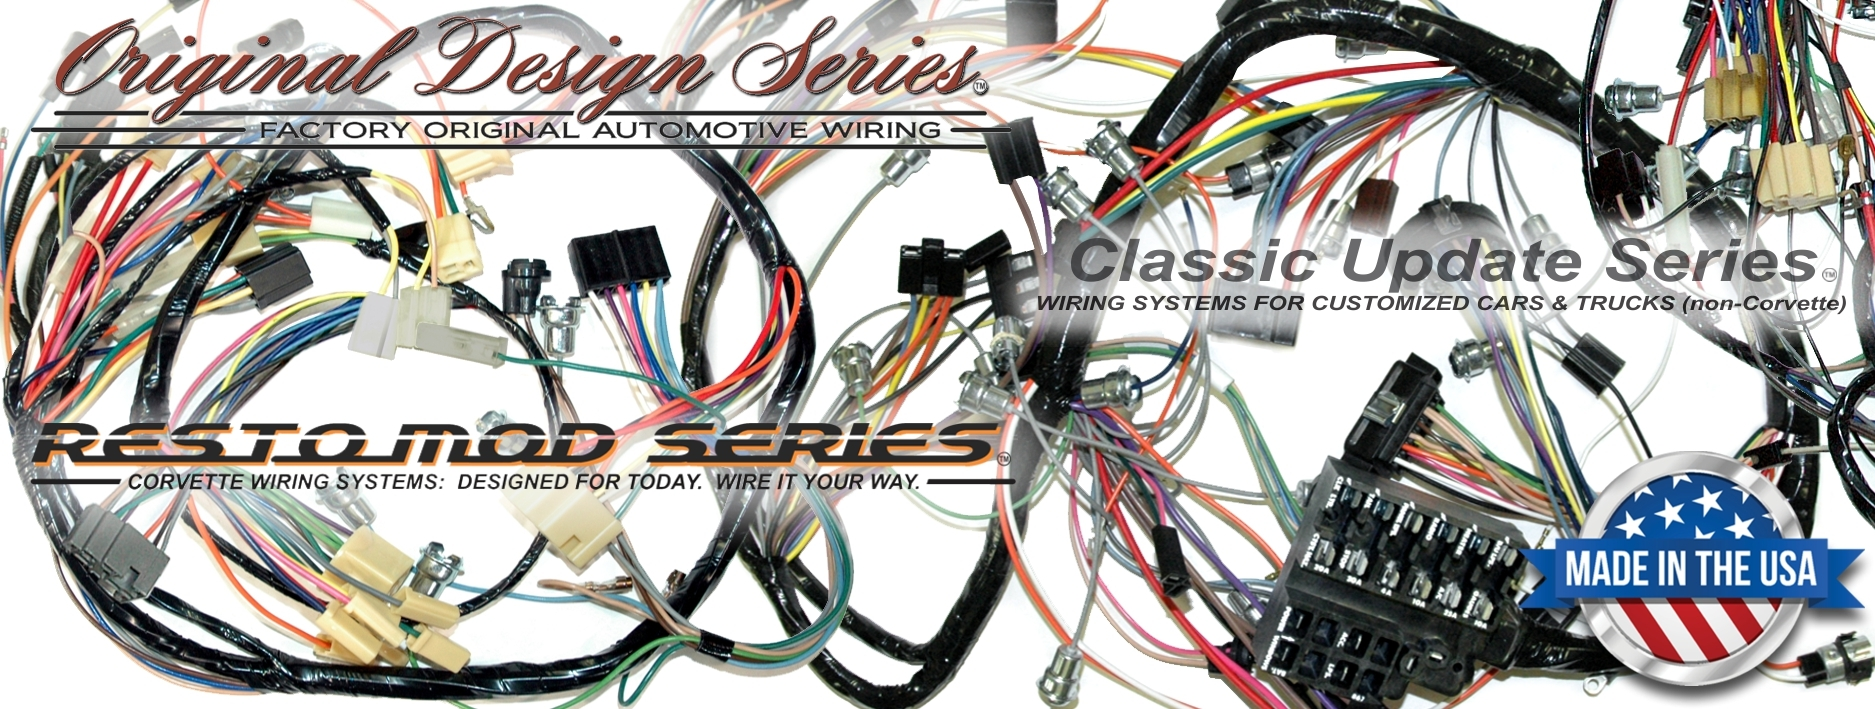 Exact OEM Reproduction Wiring Harnesses and RestoMod Wiring ...